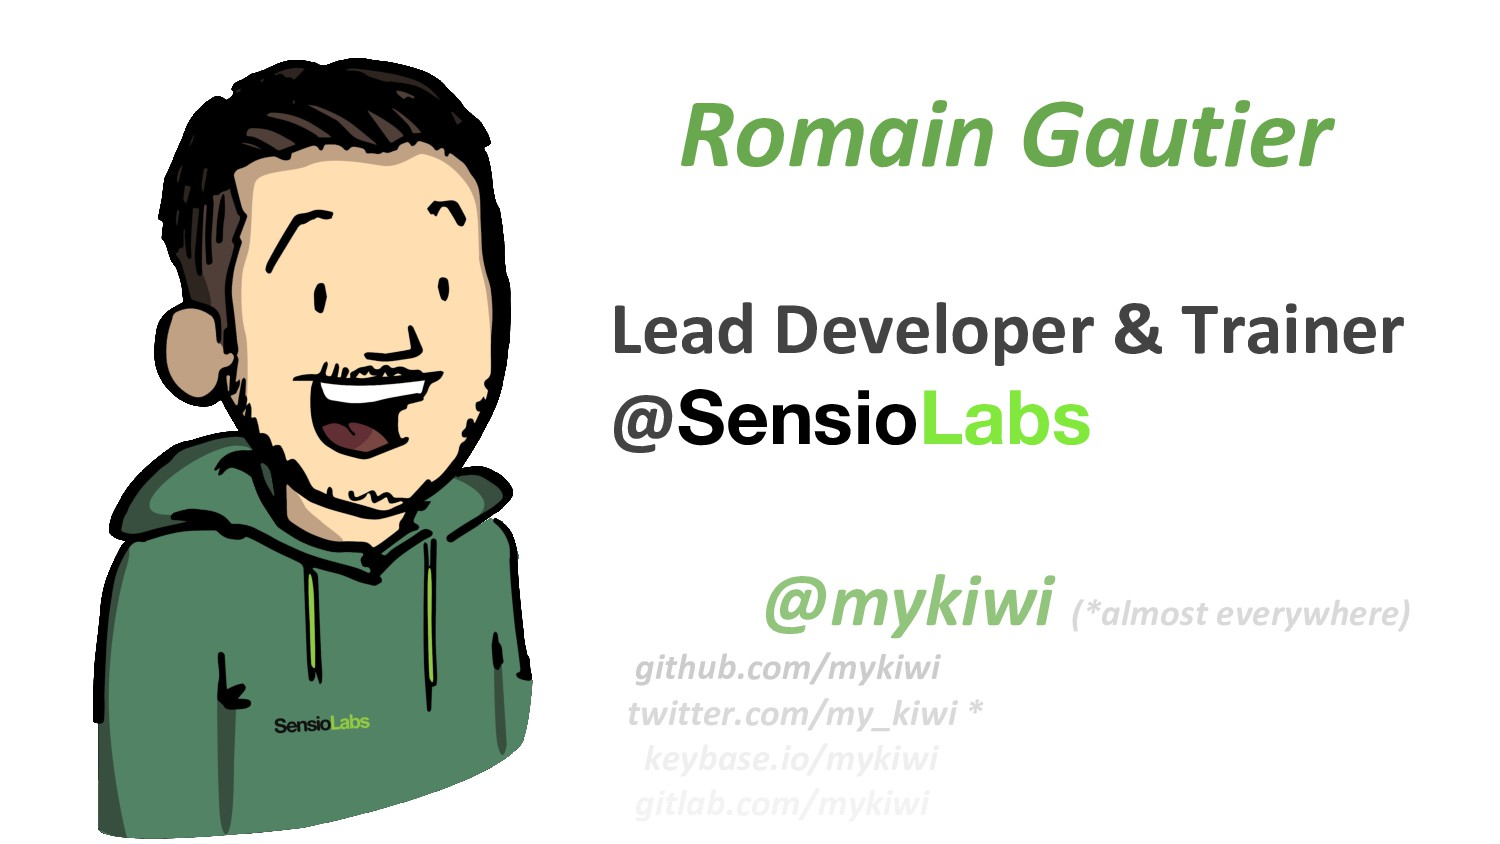 Romain Gautier Lead Developer & Trainer @Sensio...